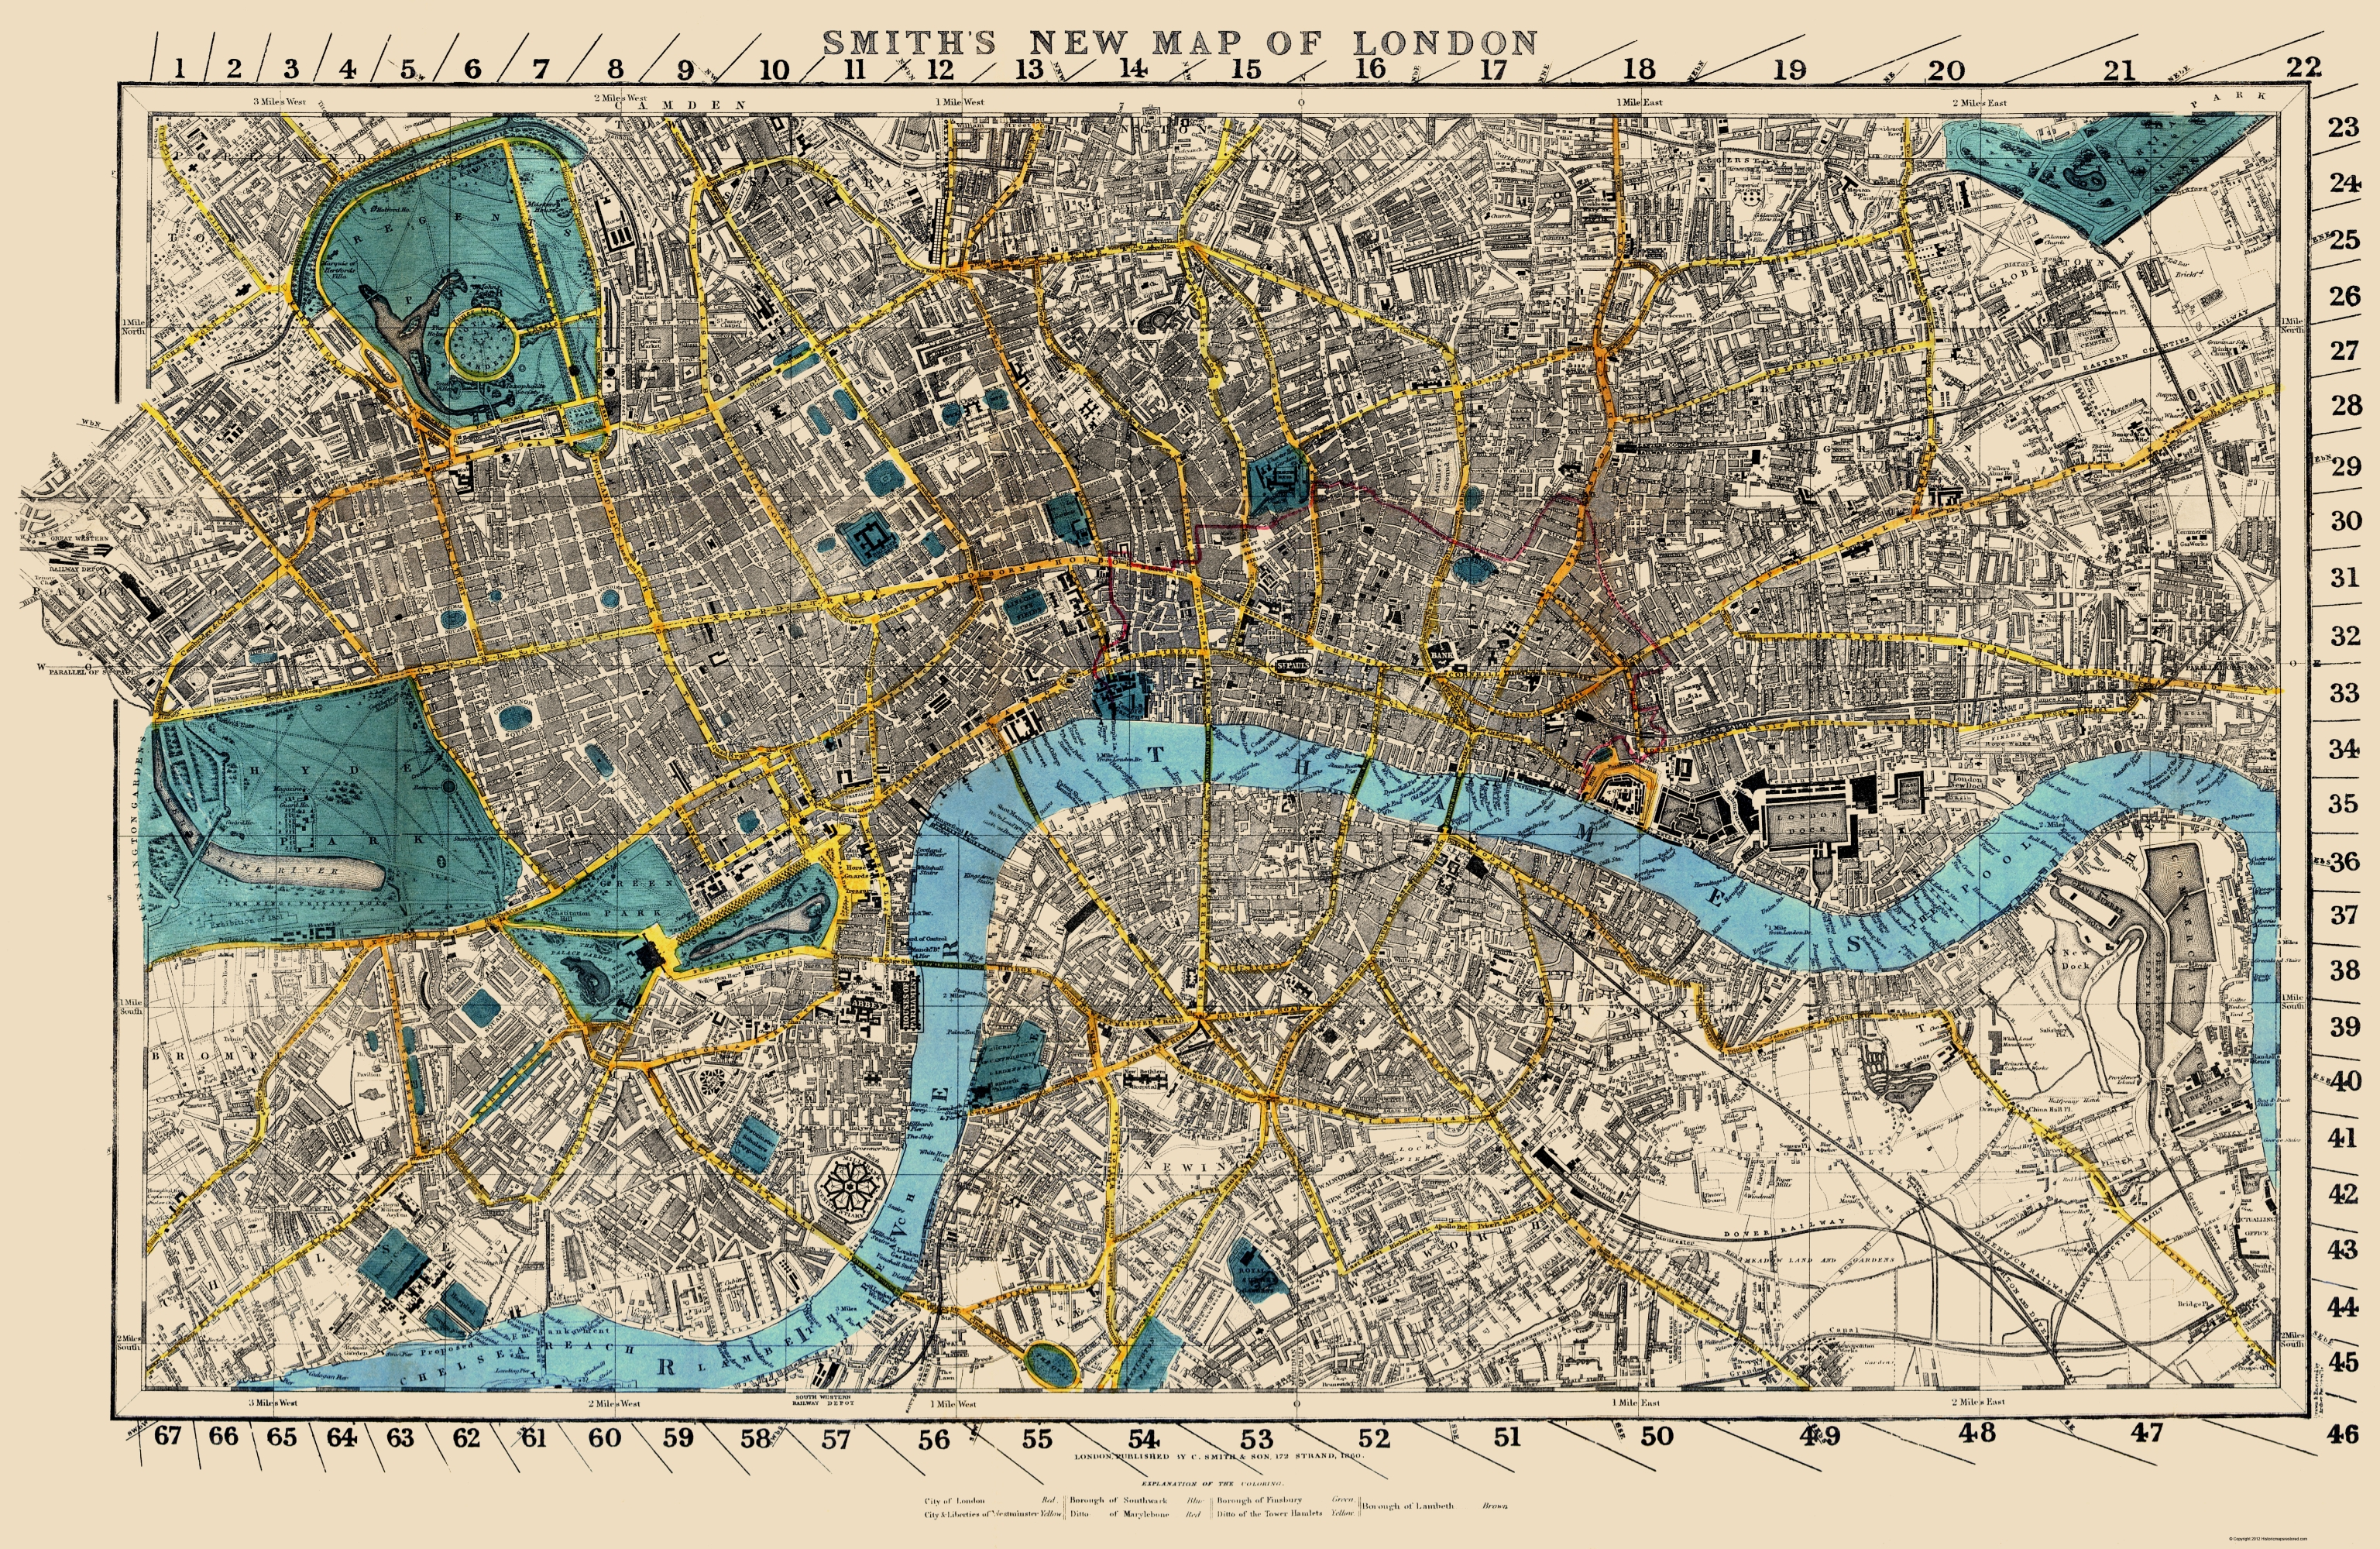 Full Map Of London.Old Great Britain Map London England Smith 1860 23 X 35 34